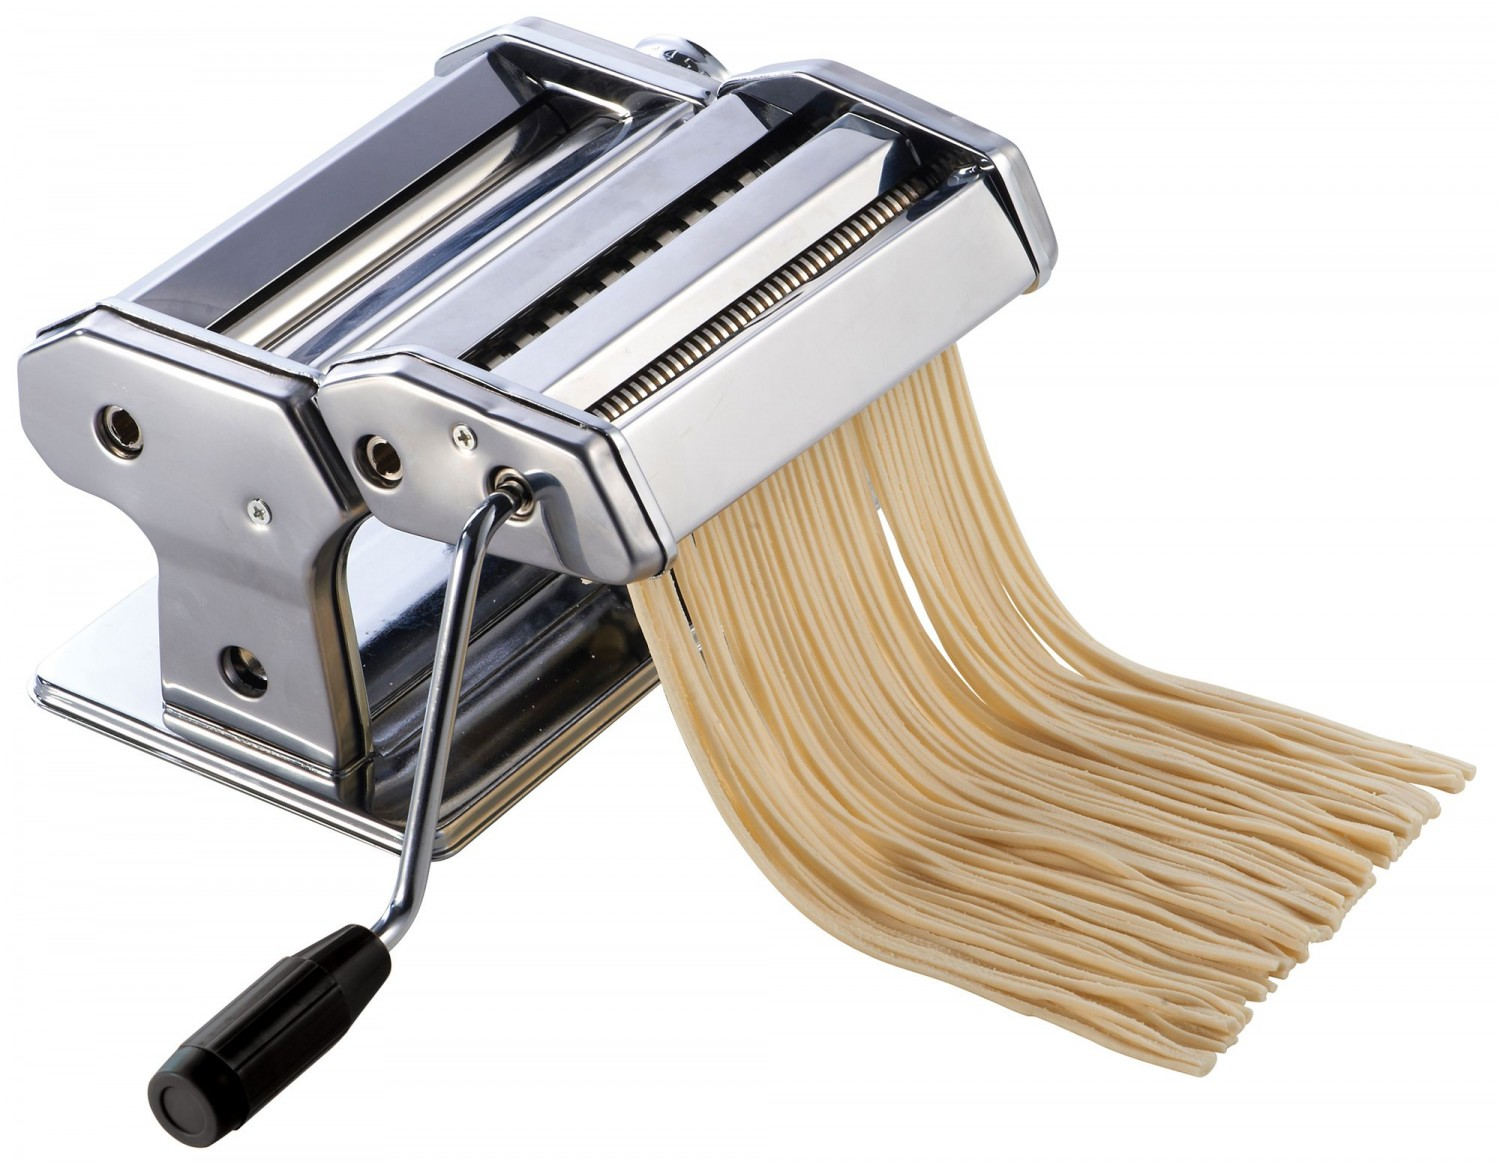 Winco Npm 7 Stainless Steel Pasta Maker With Detachable Cutter 7